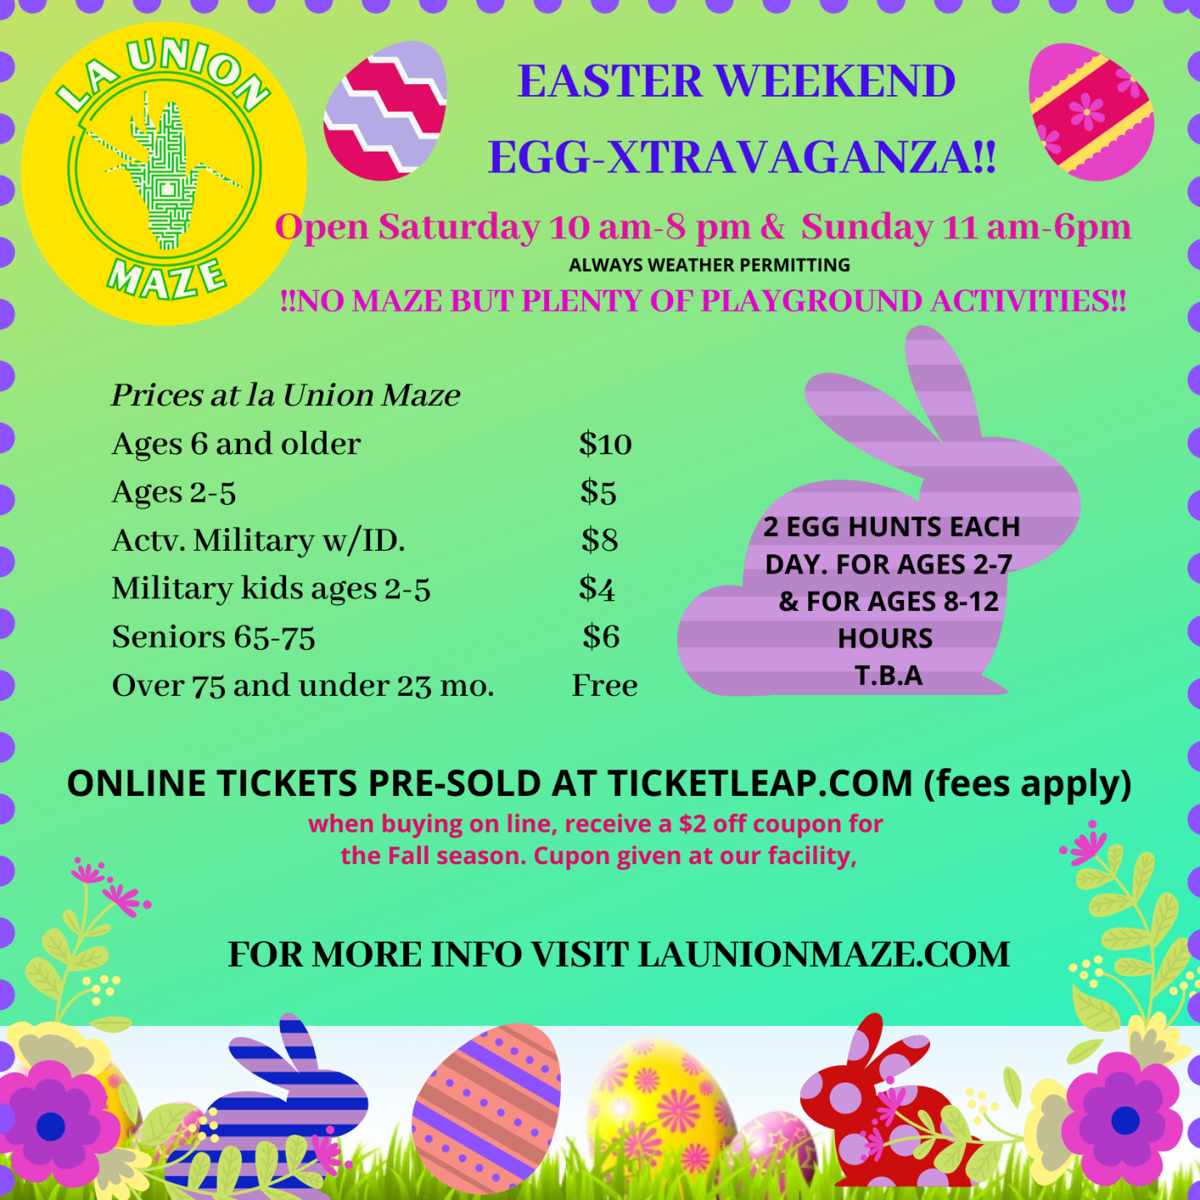 CELEBRATE EASTER AT THE FARM!!